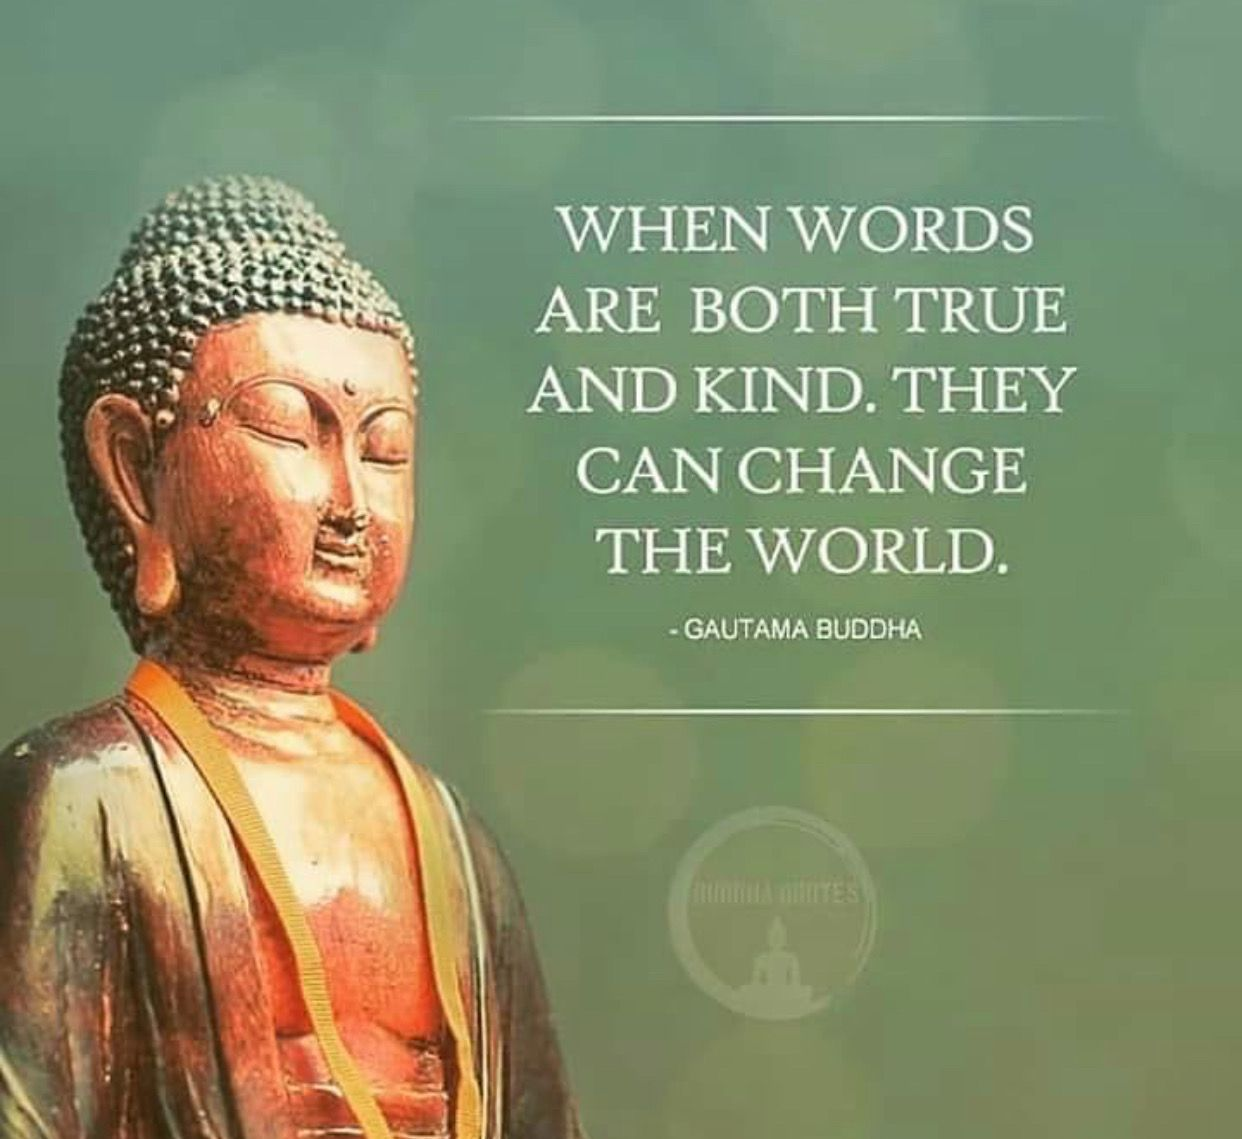 Pin By Michele On Pinspirational Words Of Wisdom Sarcasm Just Plain Funny Or Totally Inappropriate Buddhism Meditation Buddha Quote Buddha Quotes